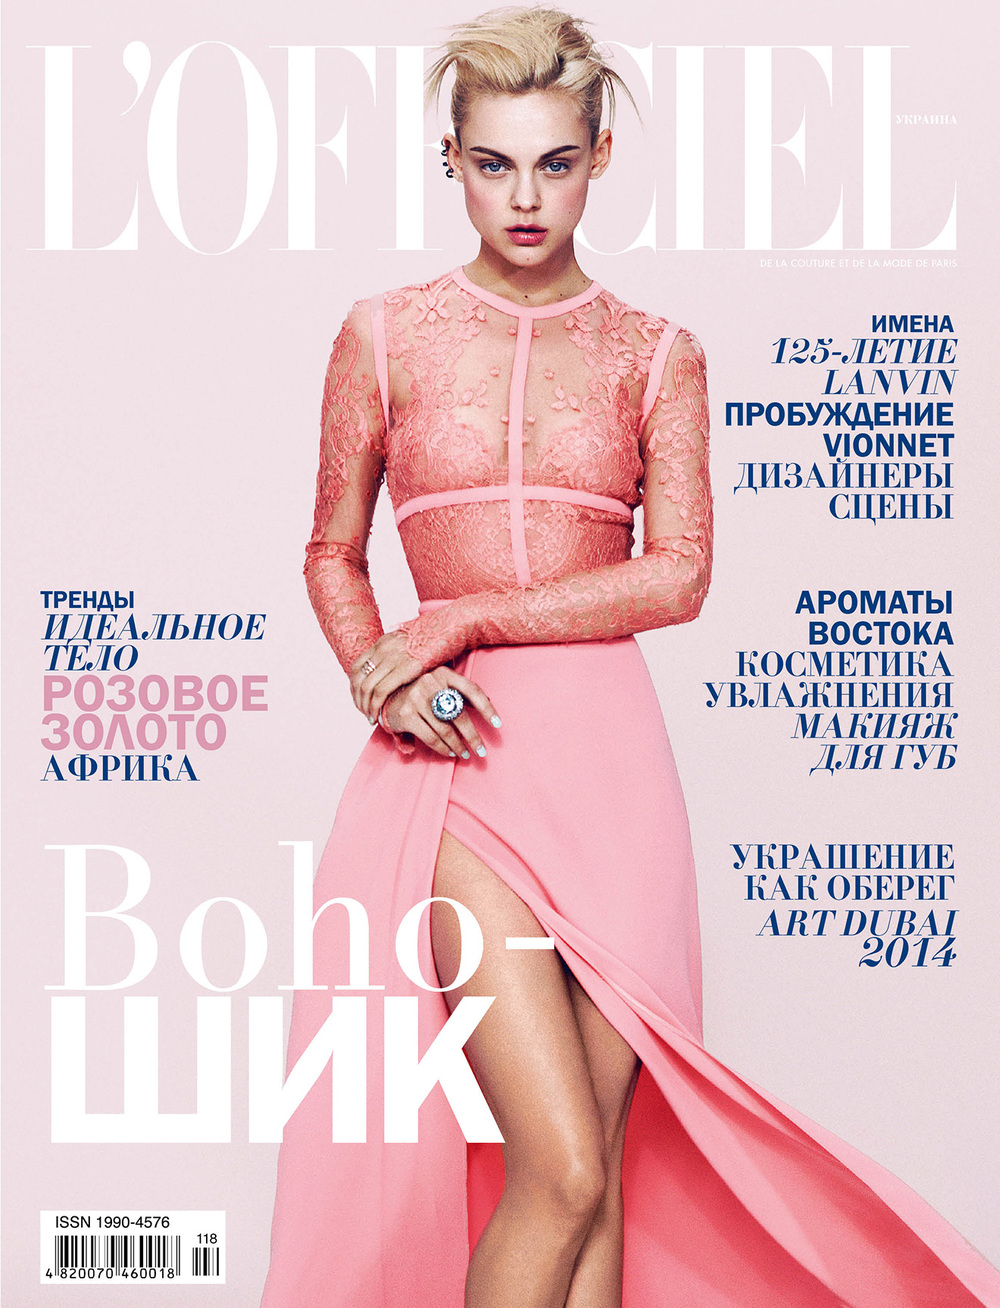 L'OFFICIEL UKRAINE_May 2014